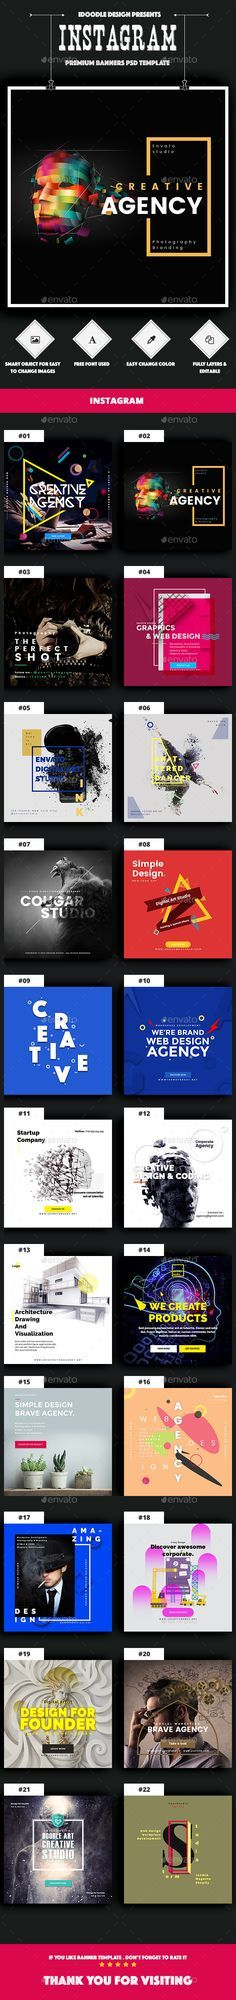 22 Agency Instagram Banners Template - Download Here : http://graphicriver.net/item/agency-instagram-banners-ads-22-psd/15392703?ref=yinkira